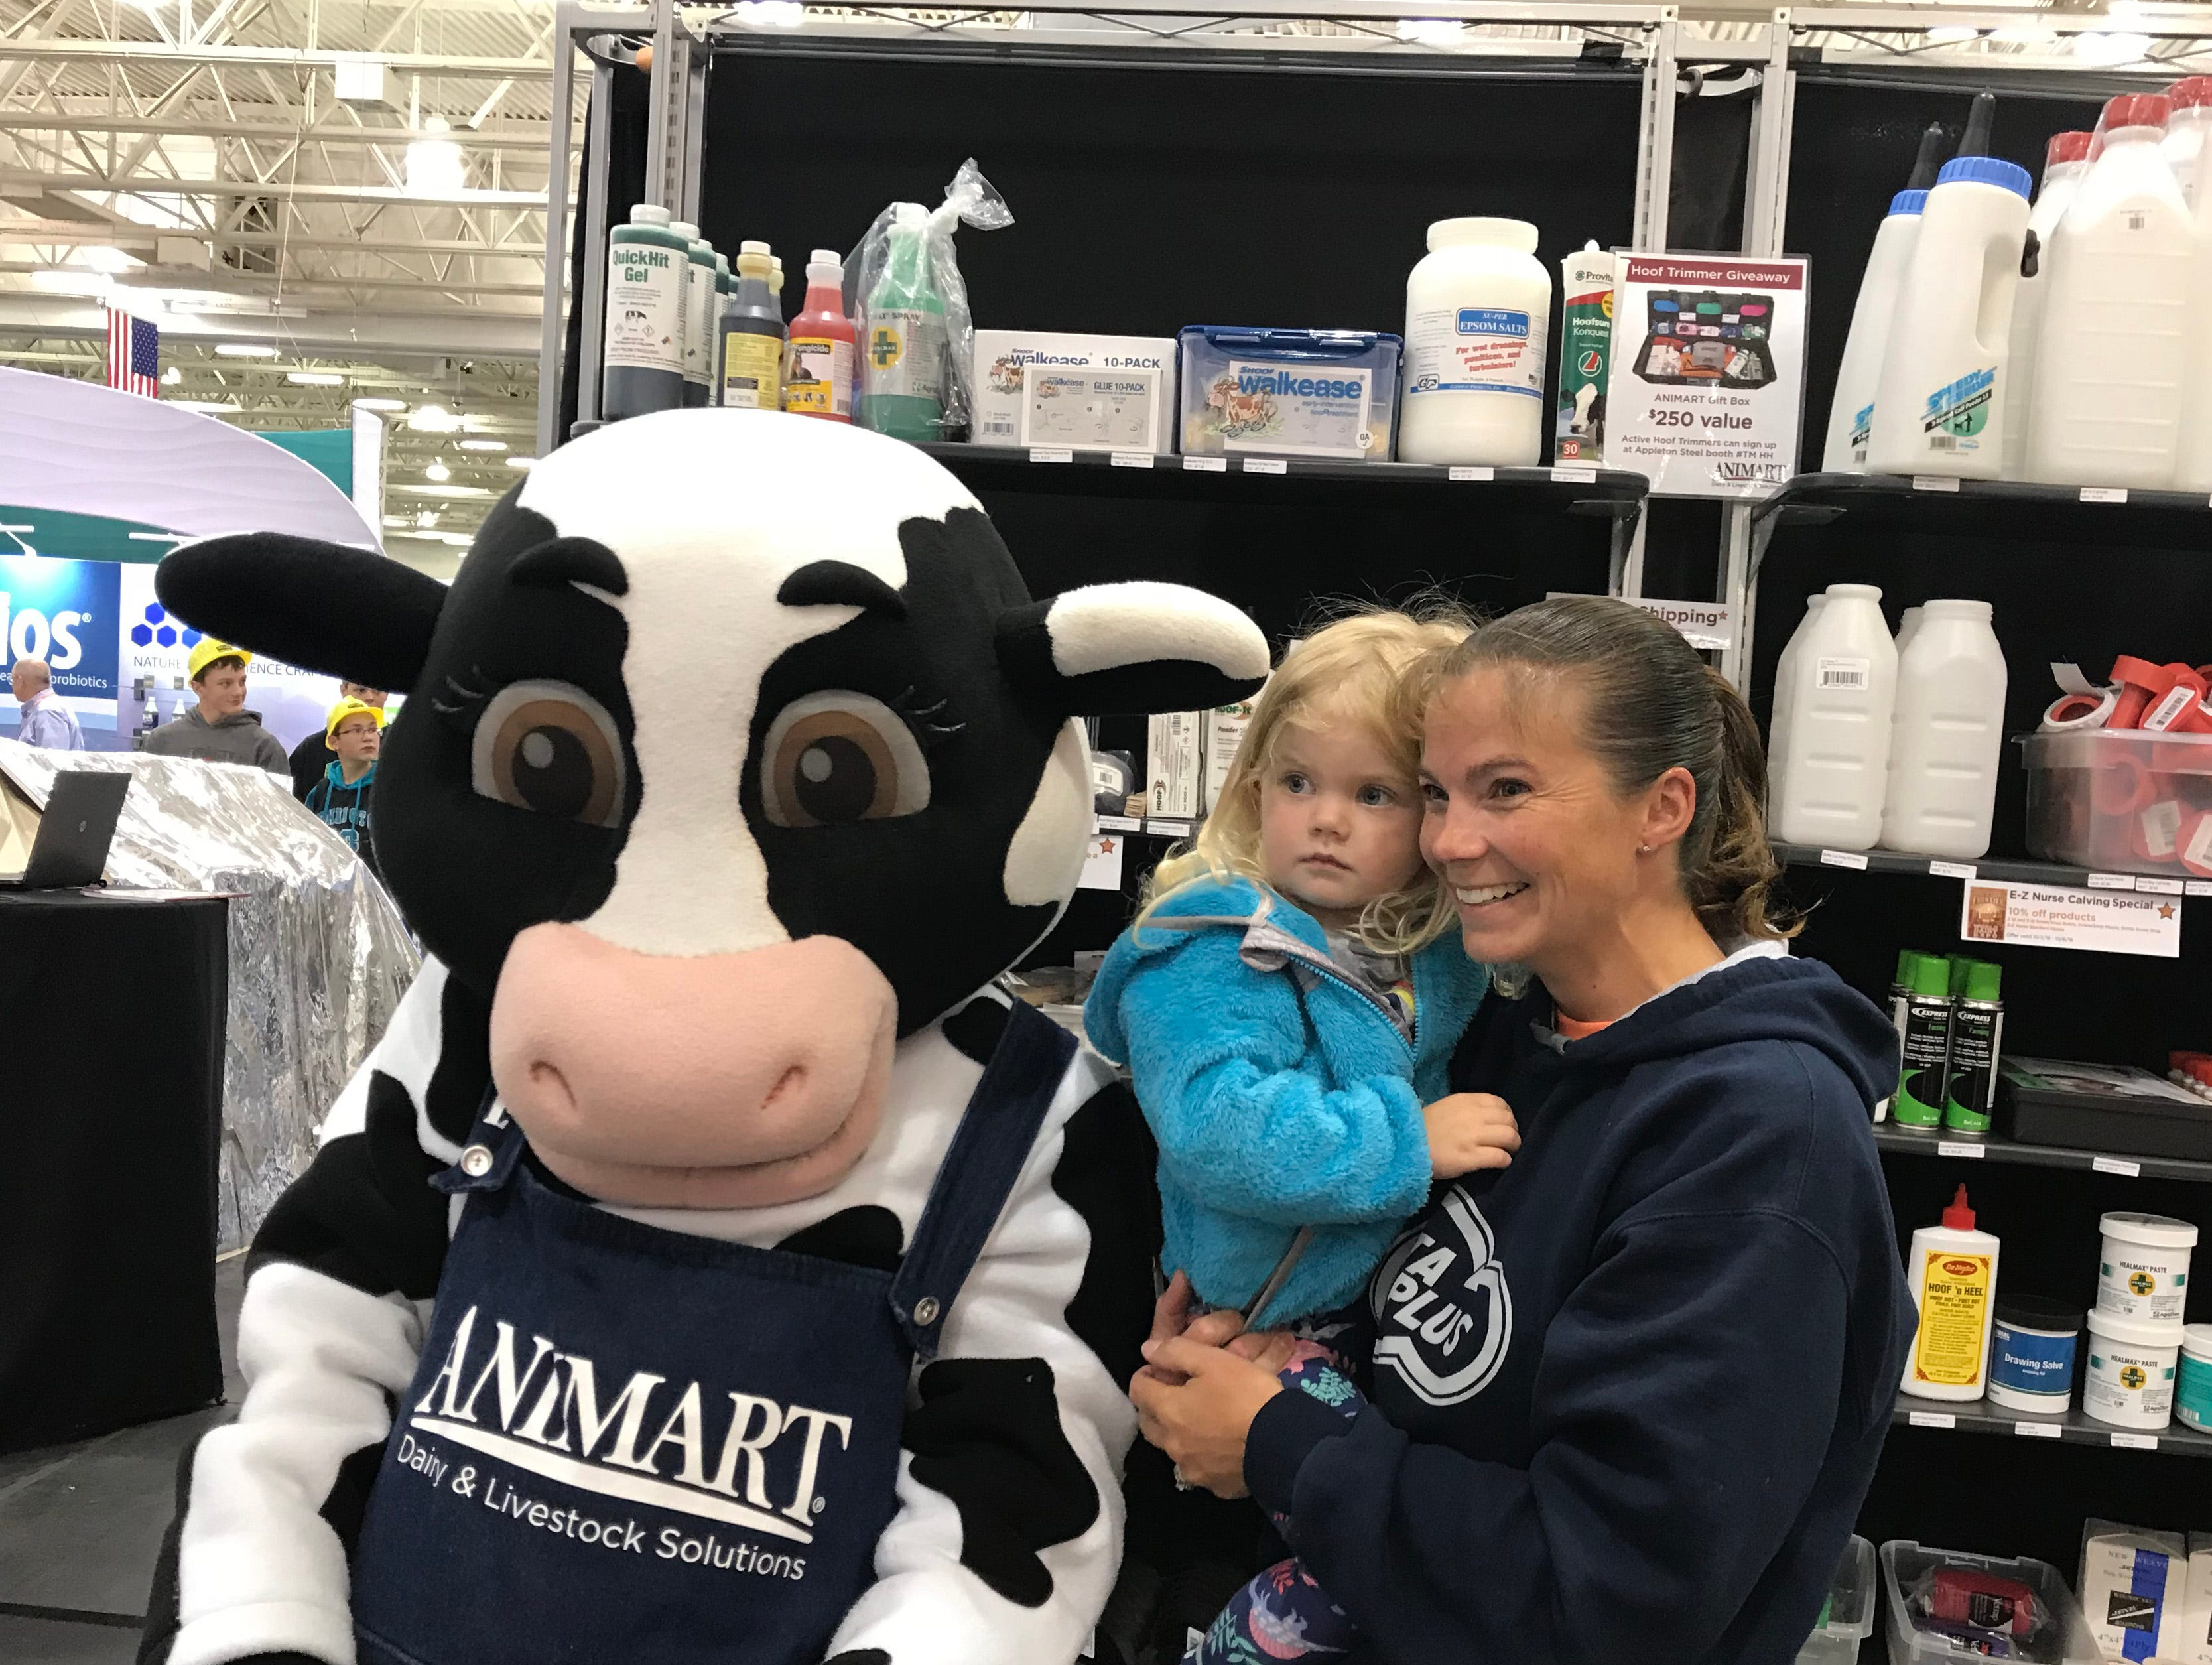 A quick post with the Animart mascot inside the Exhibition Hall at World Dairy Expo.